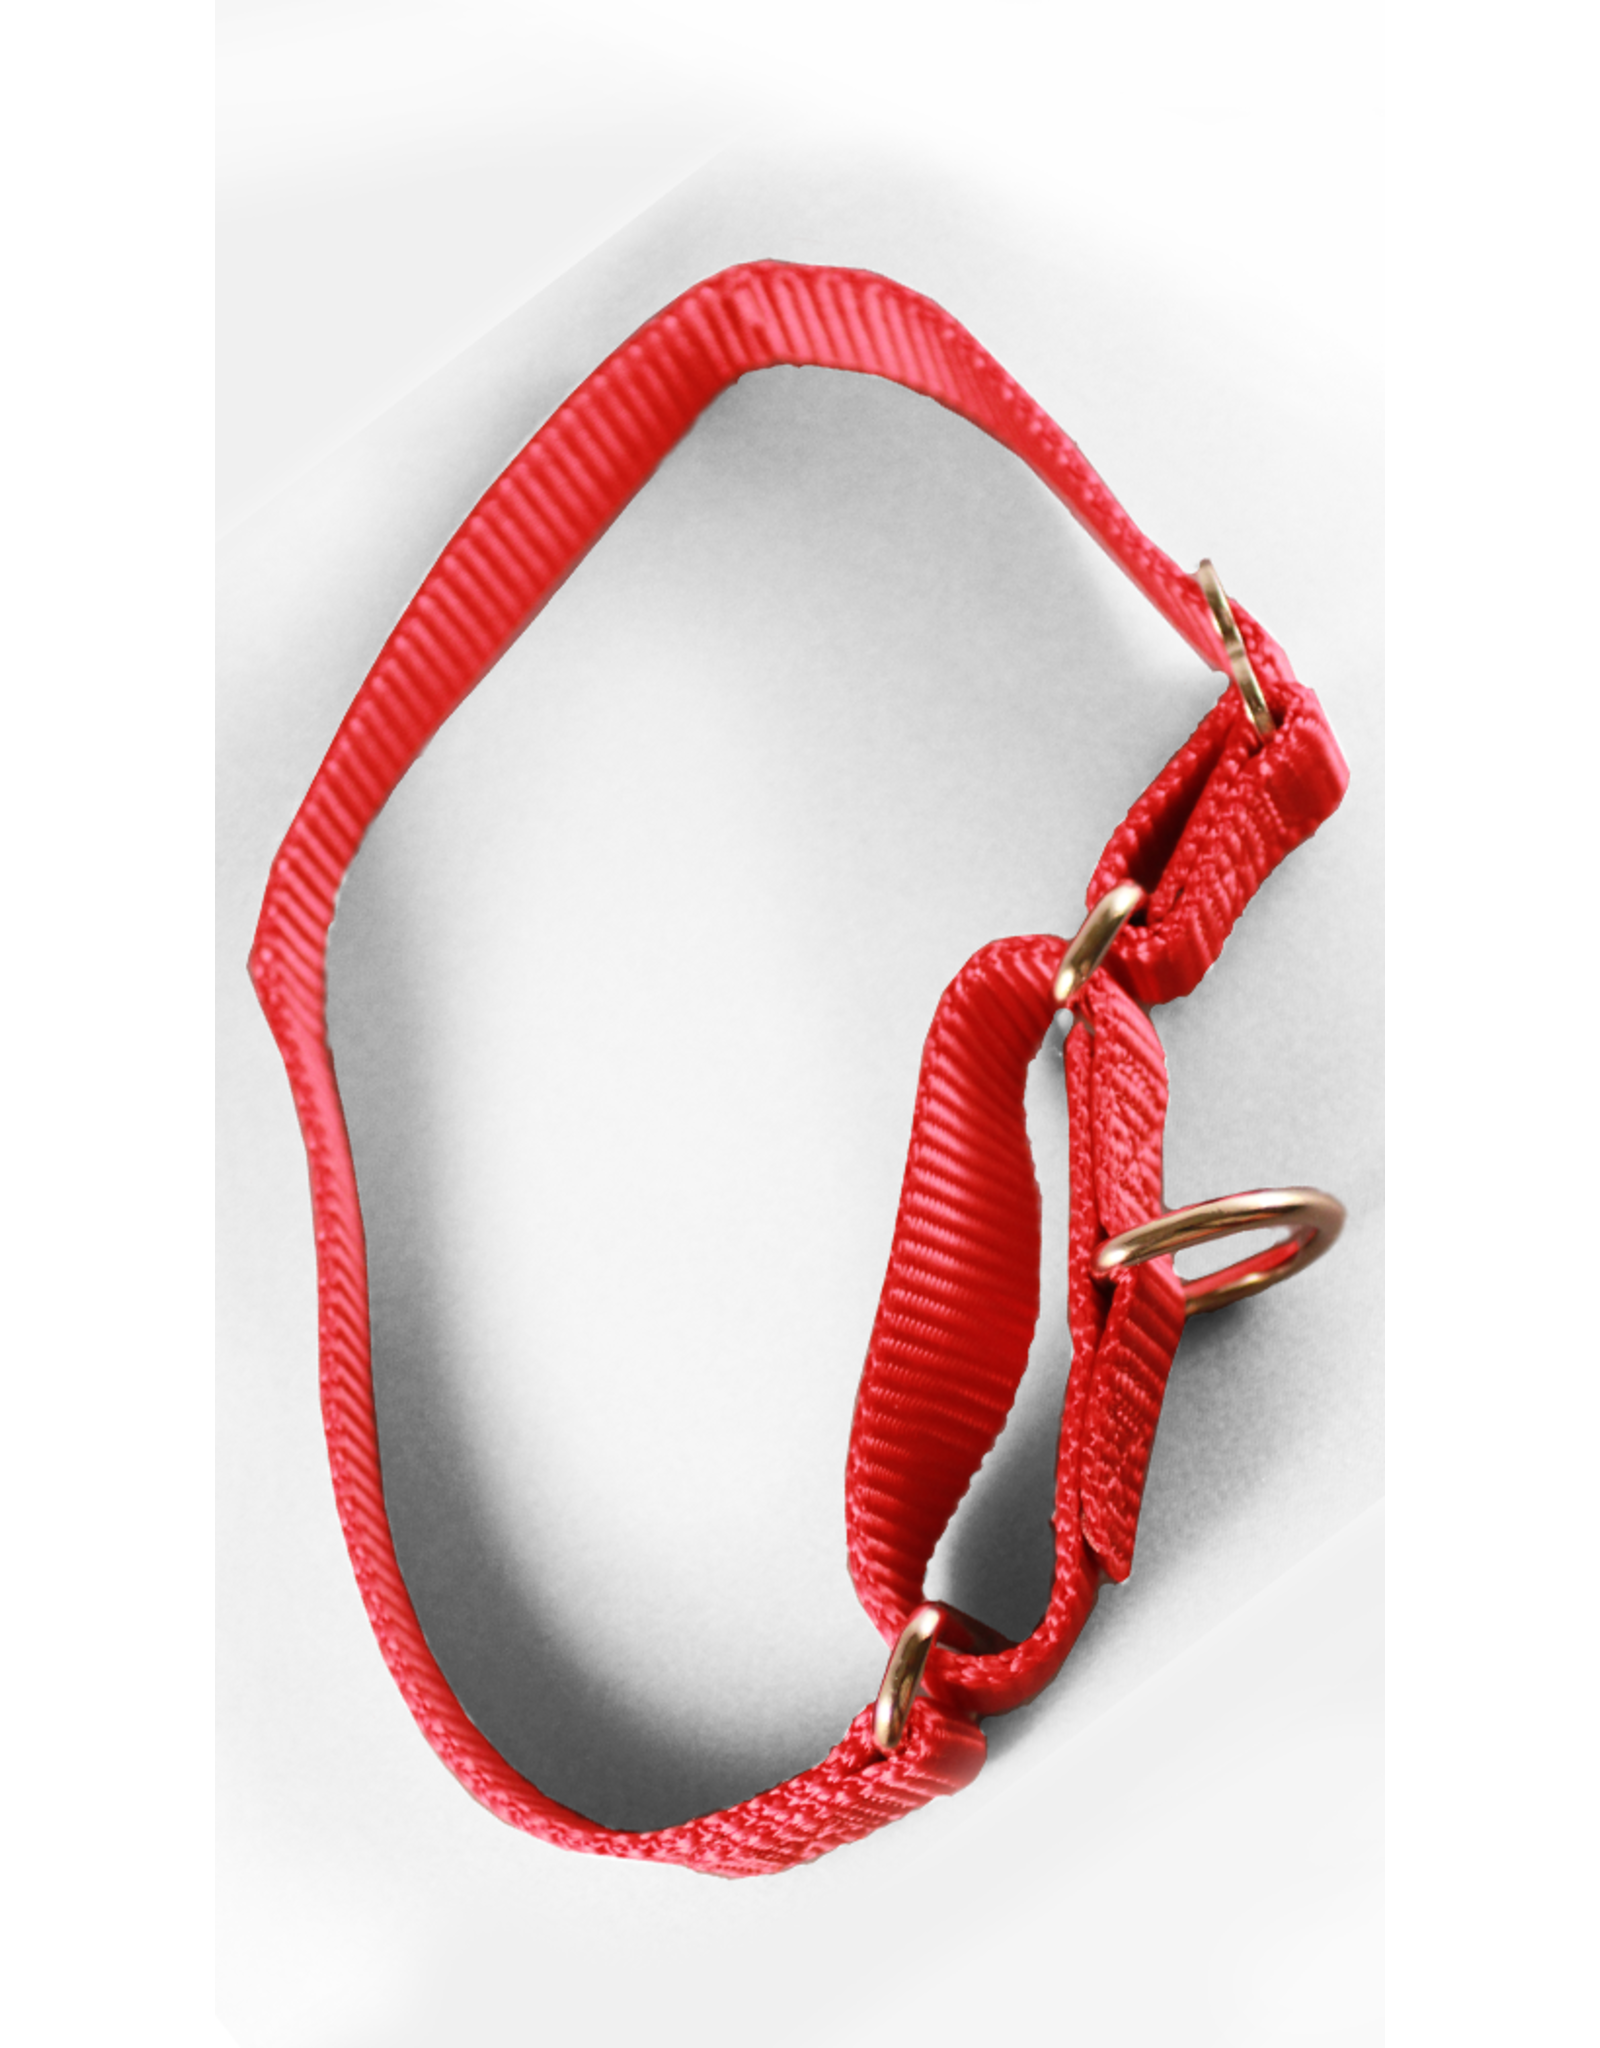 "Crowd Pleaser Grrrip Martingale X-Tra Control 1"" Nylon Collars 12-18 inch or 18-30 inch"